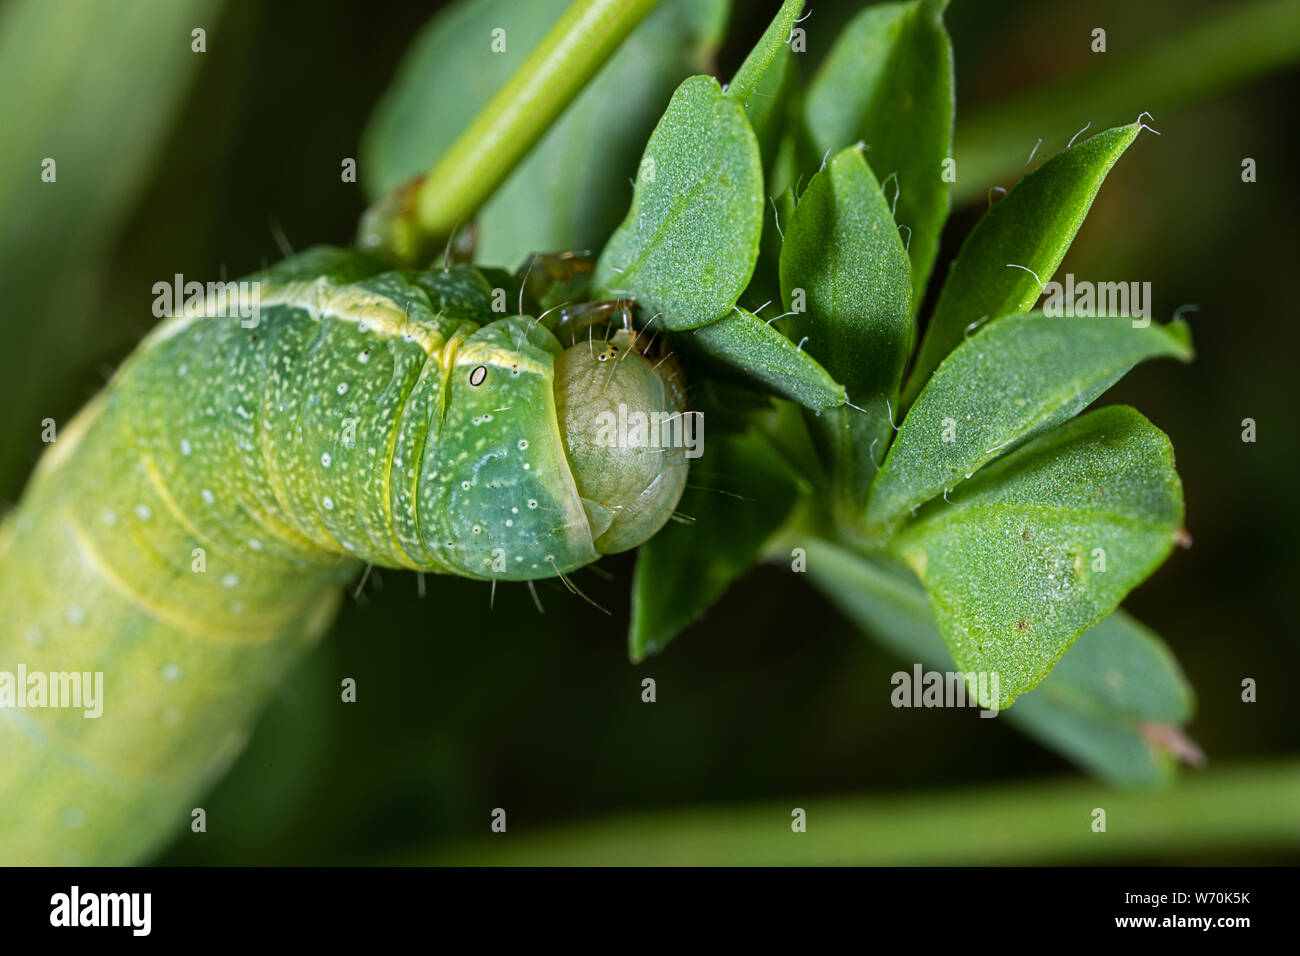 head of a green caterpillar with white stripes on the side Stock Photo